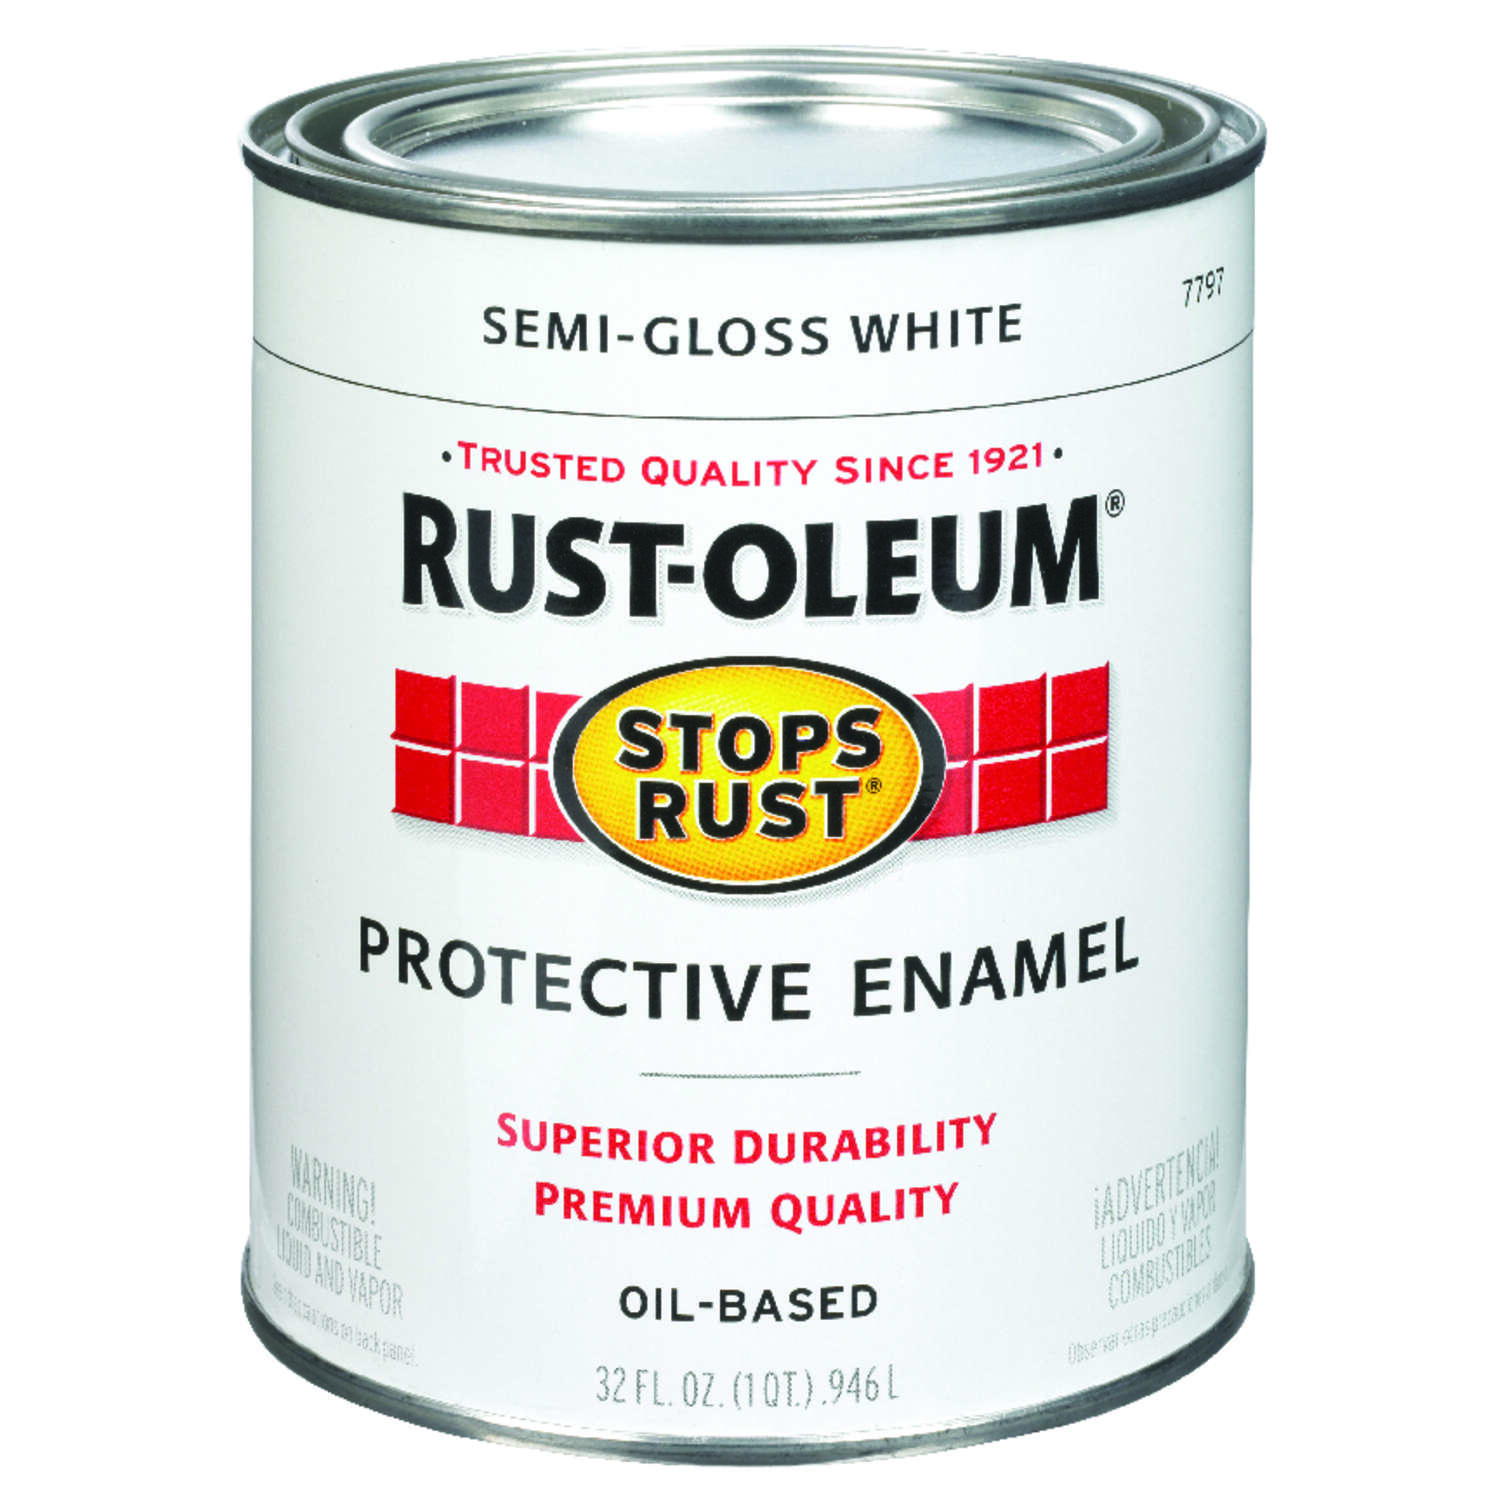 Rust-Oleum  Stops Rust  Semi-Gloss  White  Oil-Based  Alkyd  Exterior and Interior  Protective Ename